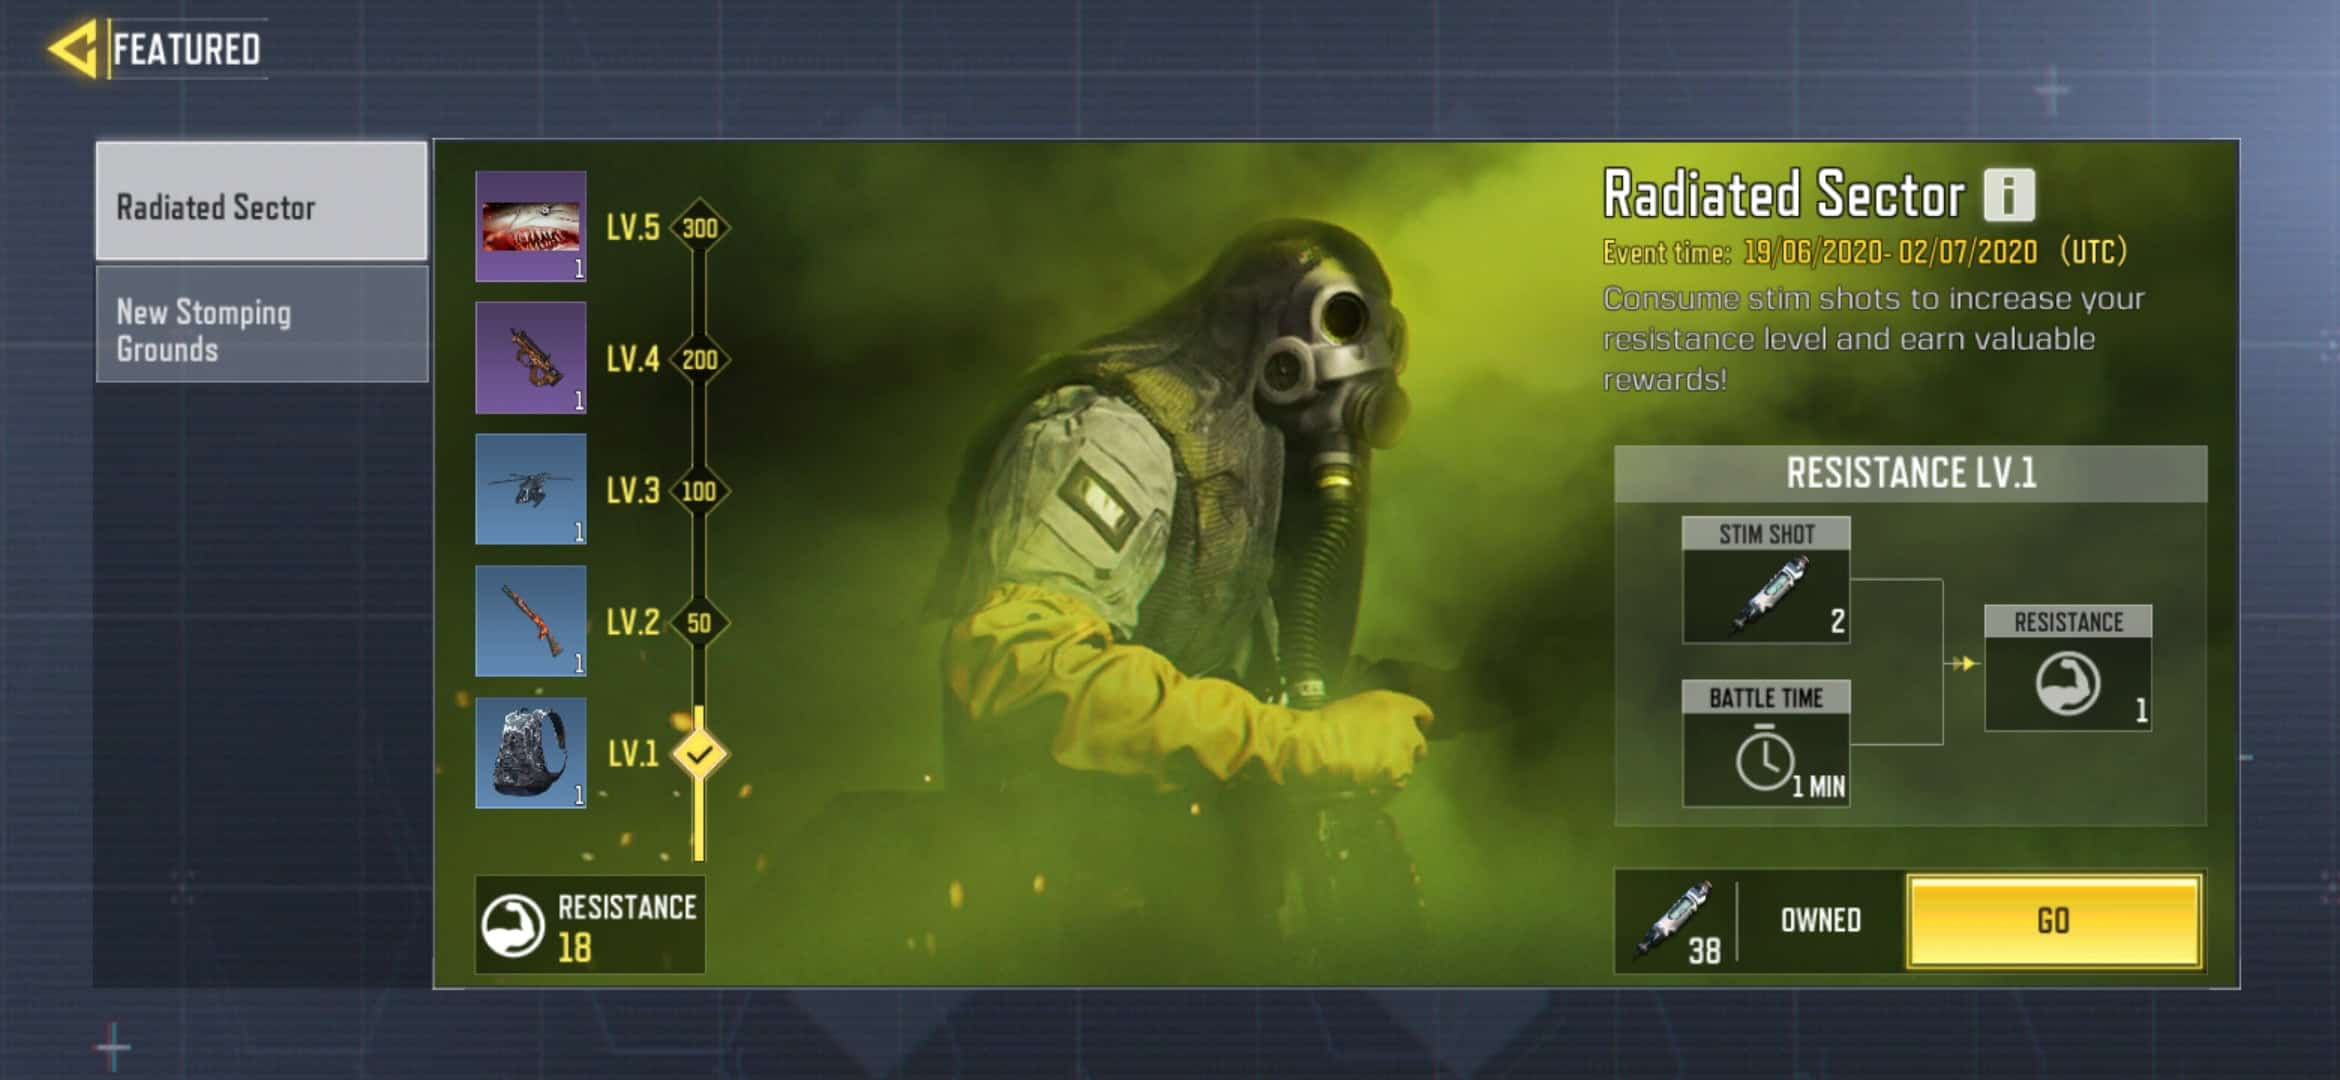 CoD Mobile Free Loot Irradiated Sector Event